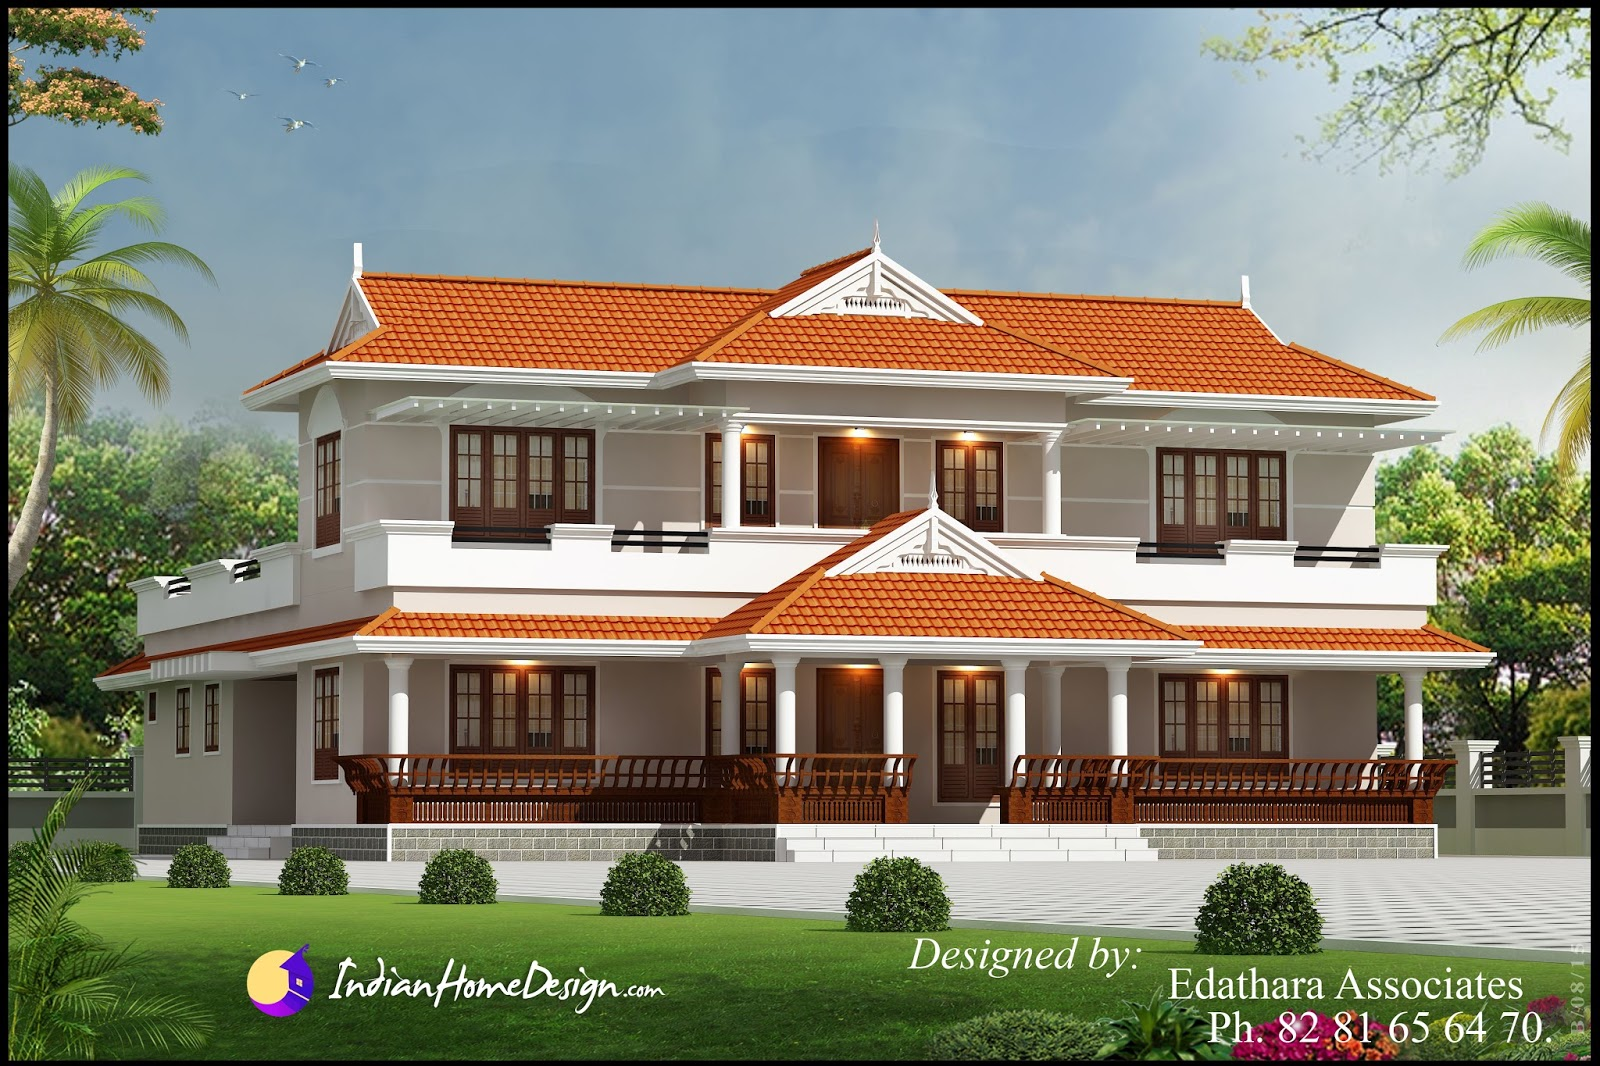 Kerala style 2288 sqft villa design traditional double for Kerala home designs photos in double floor